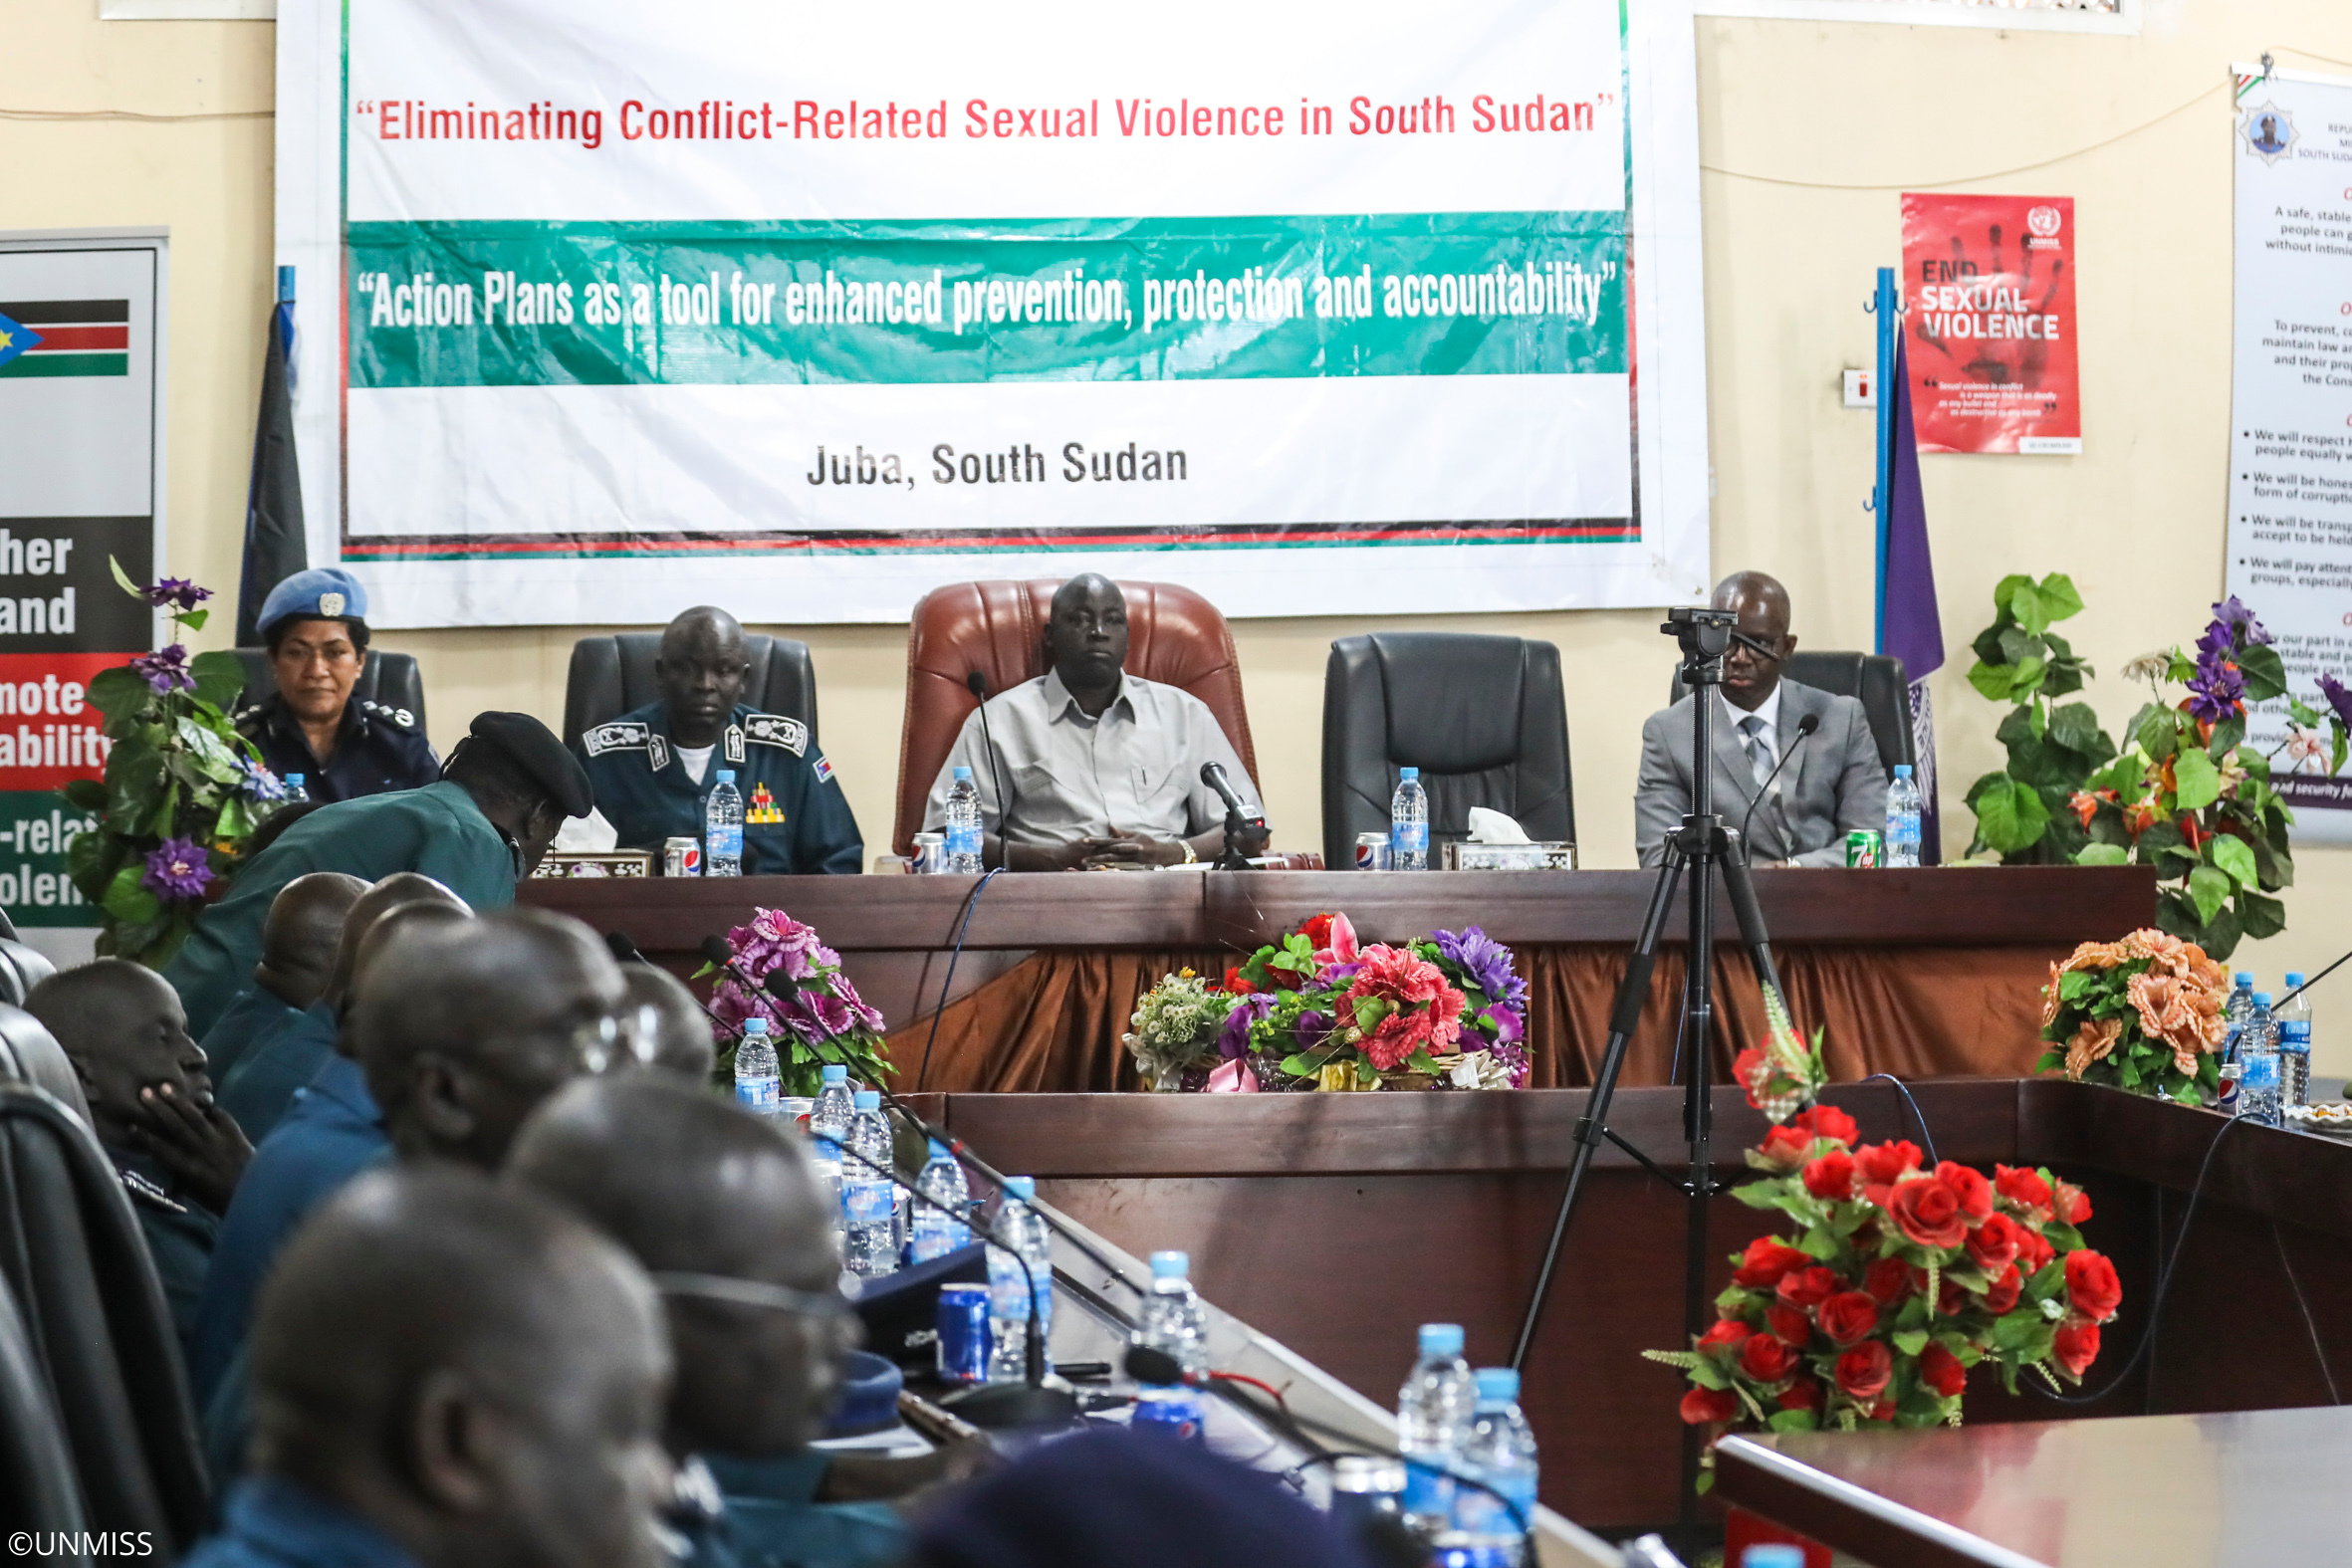 The South Sudan National Police Service Action Plan on addressing conflict-related sexual violence has been launched on 19 November 2019 in Juba